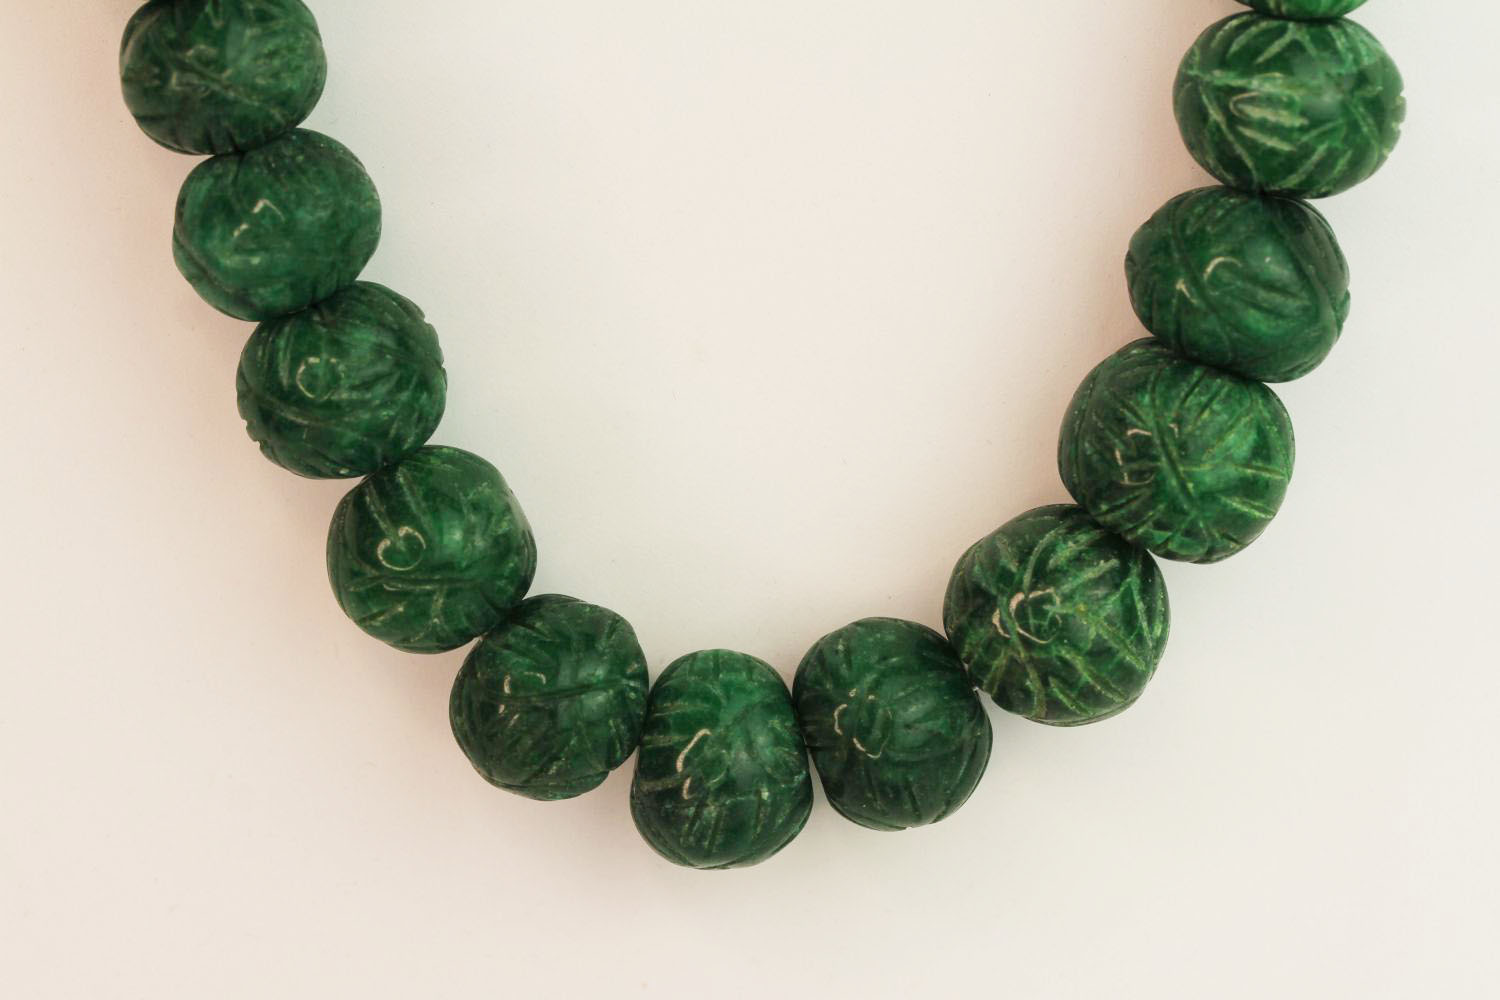 Weighty earth-mined carved natural emerald bead necklace with woven, adjustable slip knot and